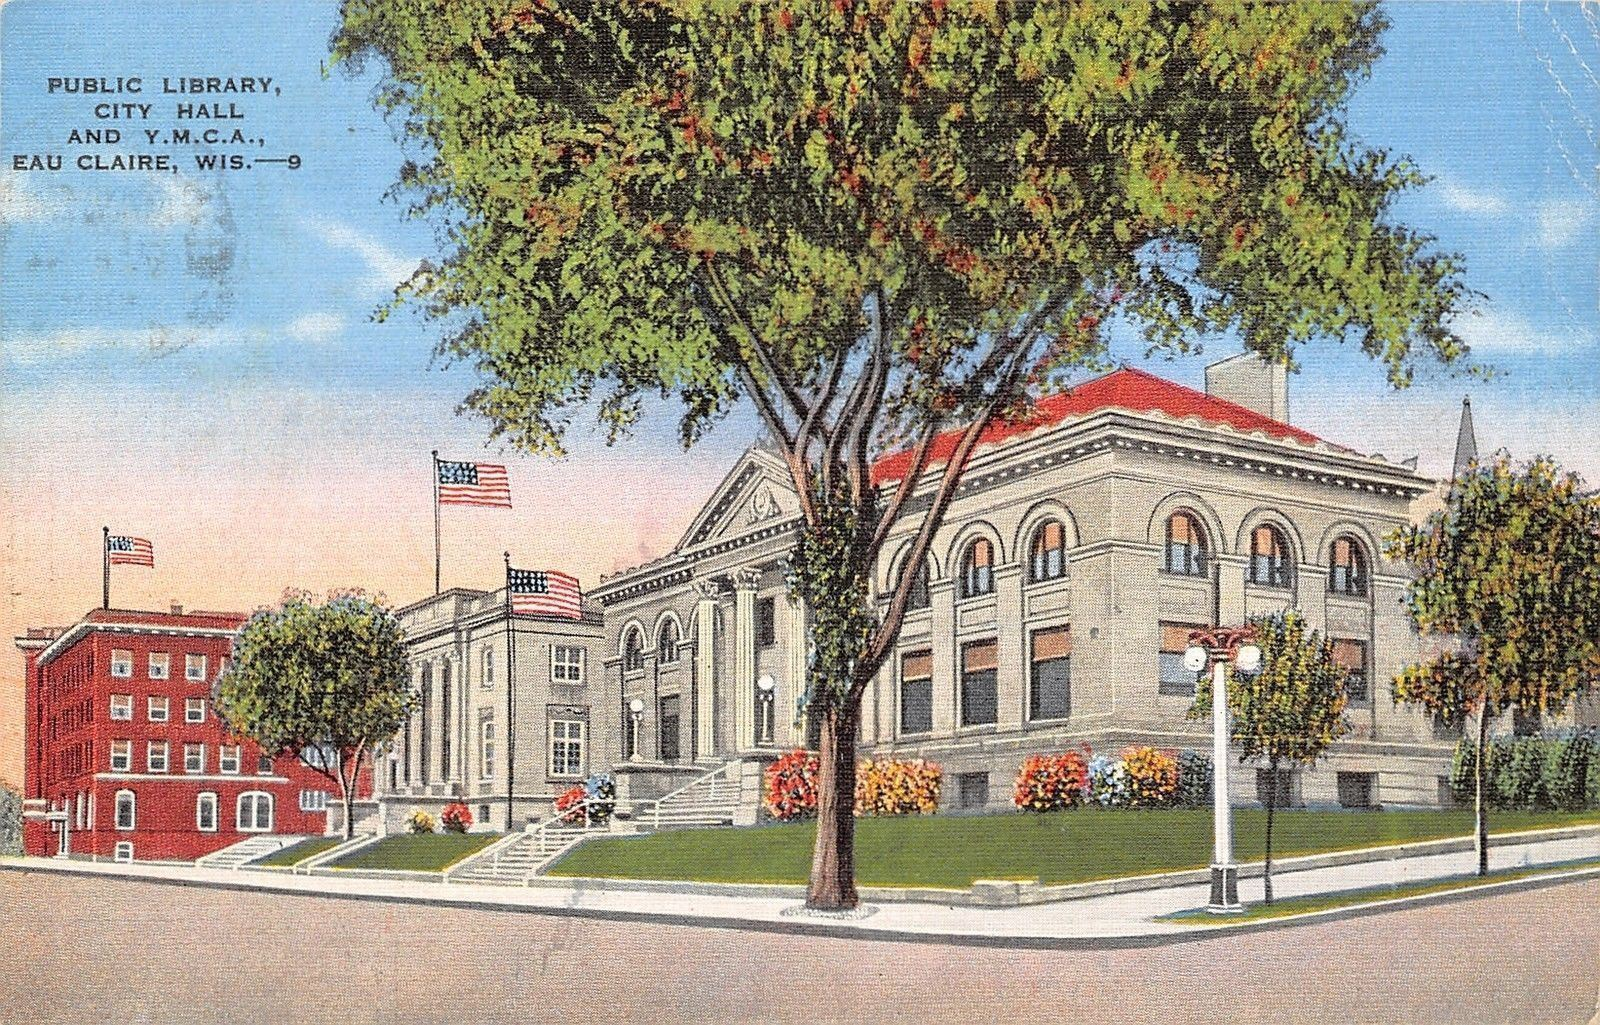 Eau Claire Wisconsin Public Library City Hall And Y M C A 1945